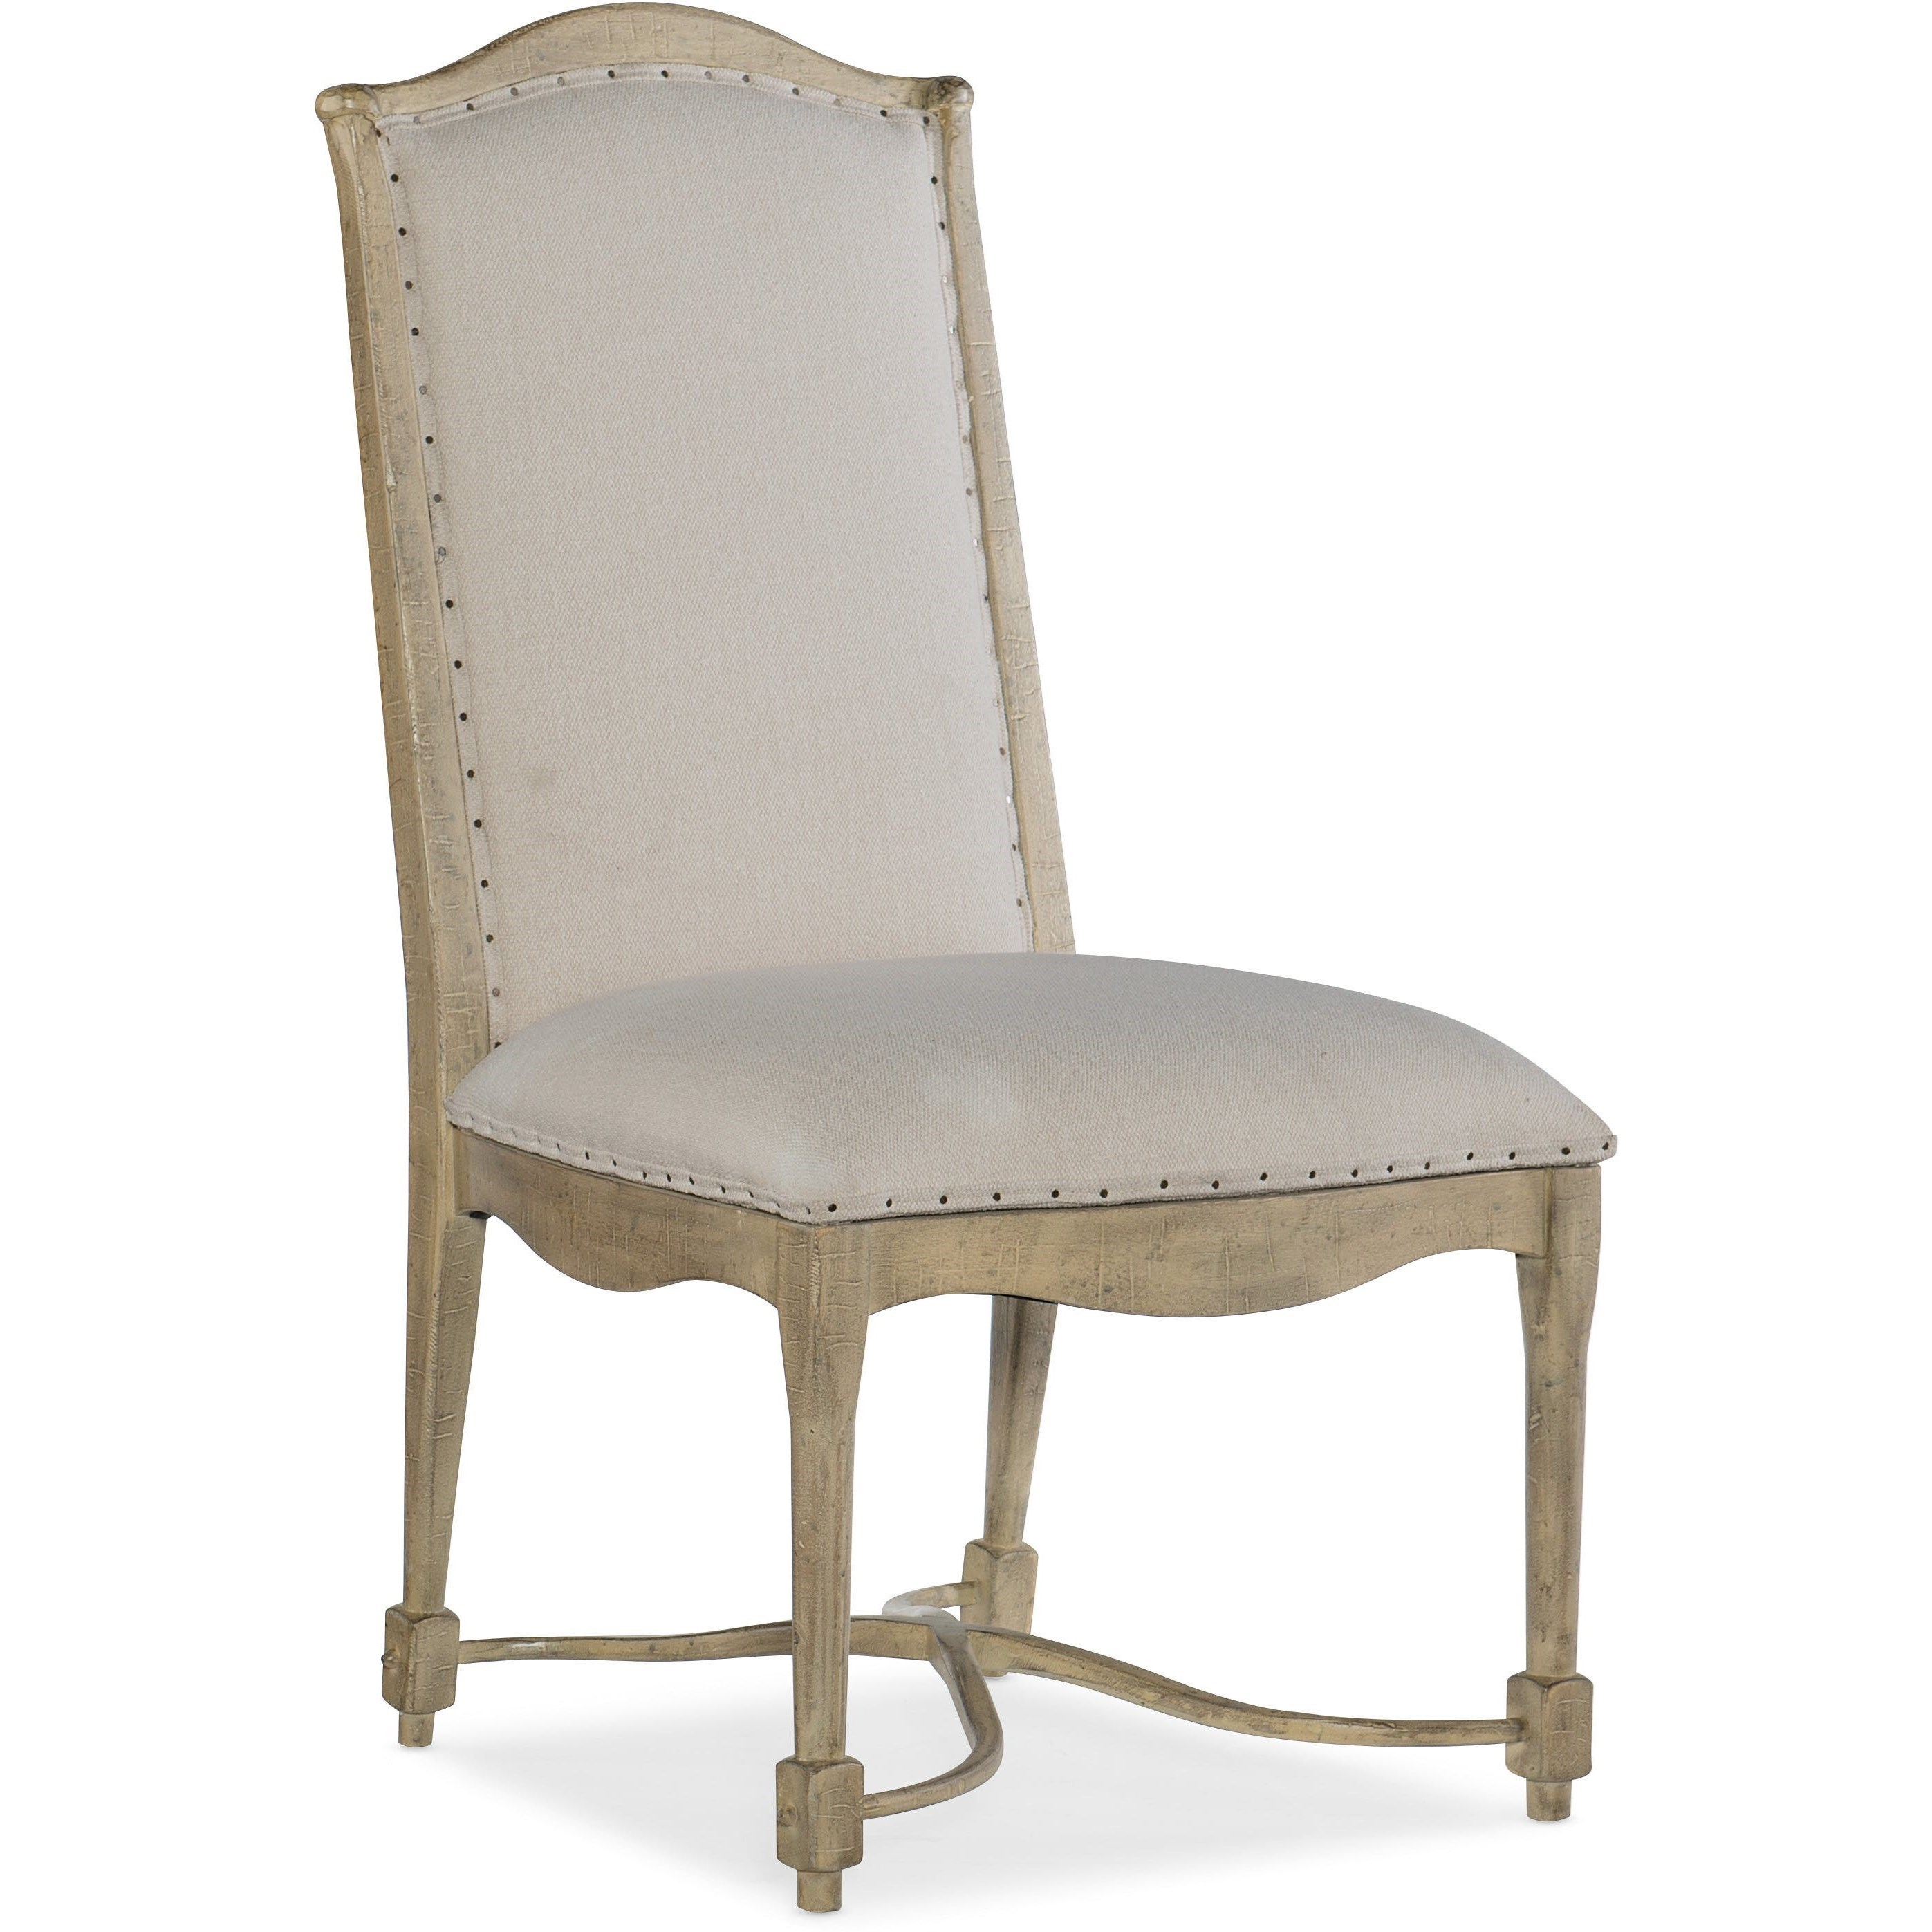 Ciao Bella Upholstered Back Side Chair by Hooker Furniture at Baer's Furniture